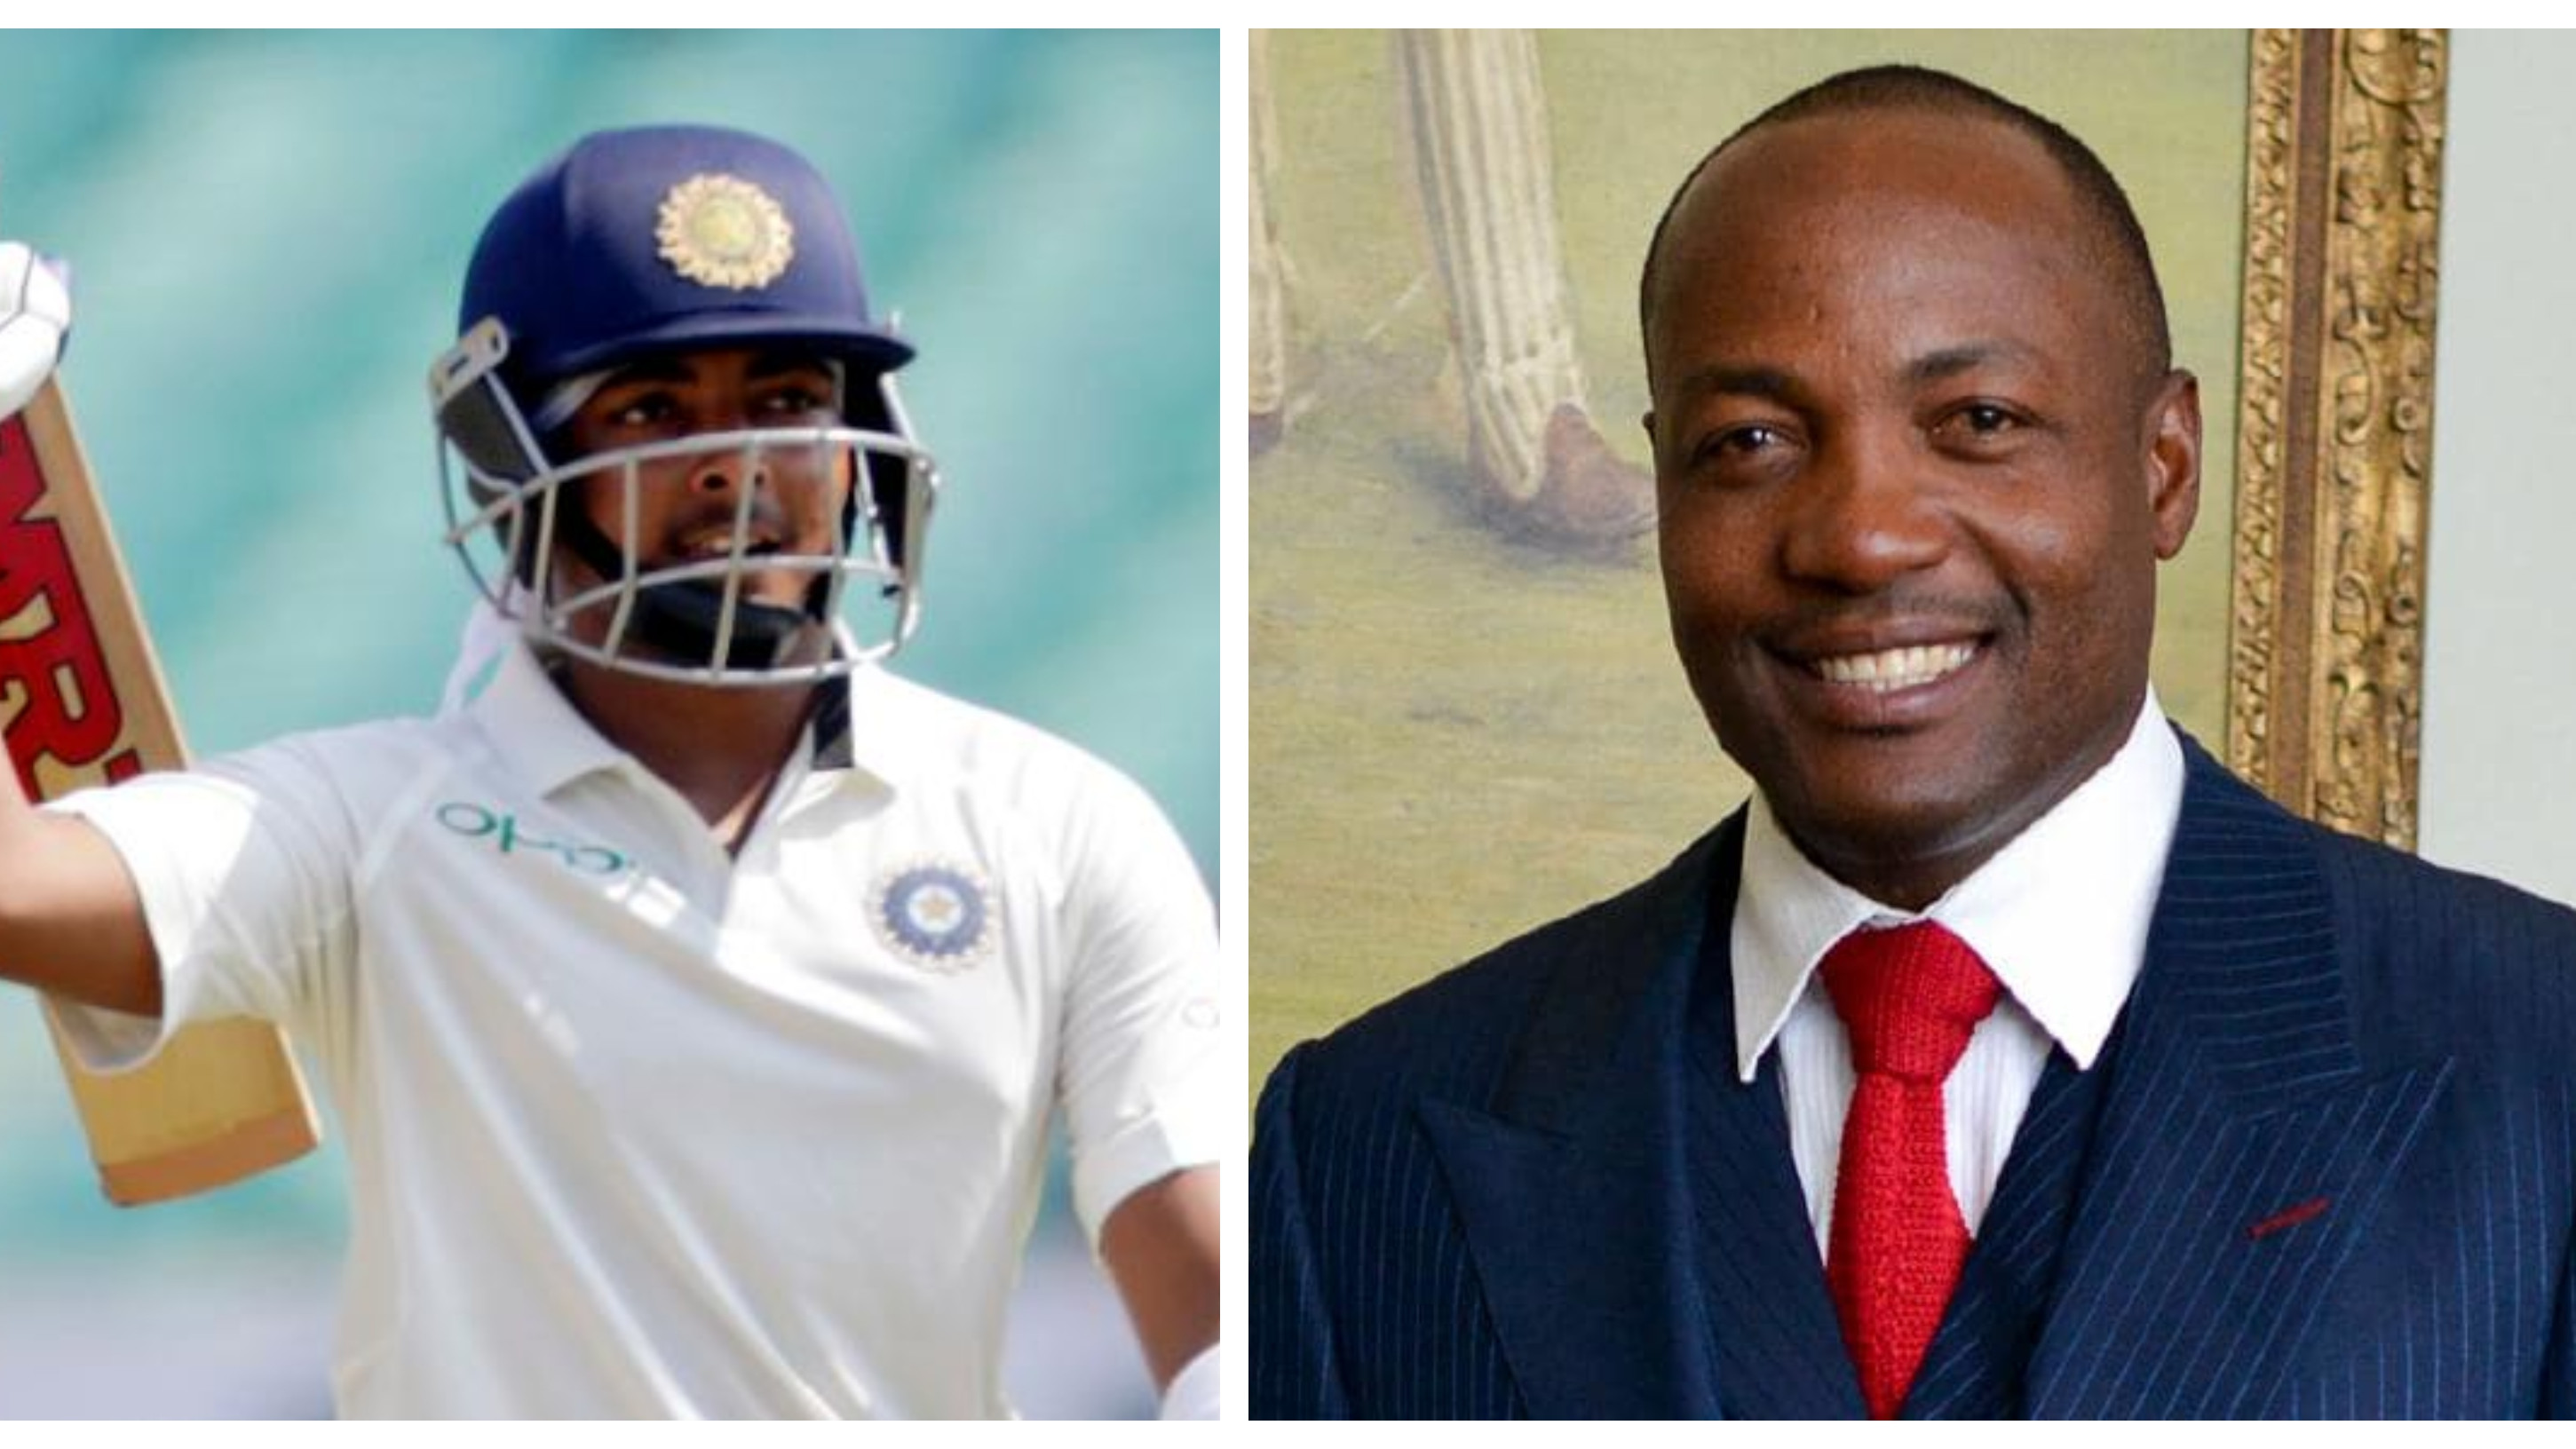 IND v WI 2018: Prithvi Shaw's batting style more of a mix of Tendulkar and Sehwag, not me, says Brian Lara